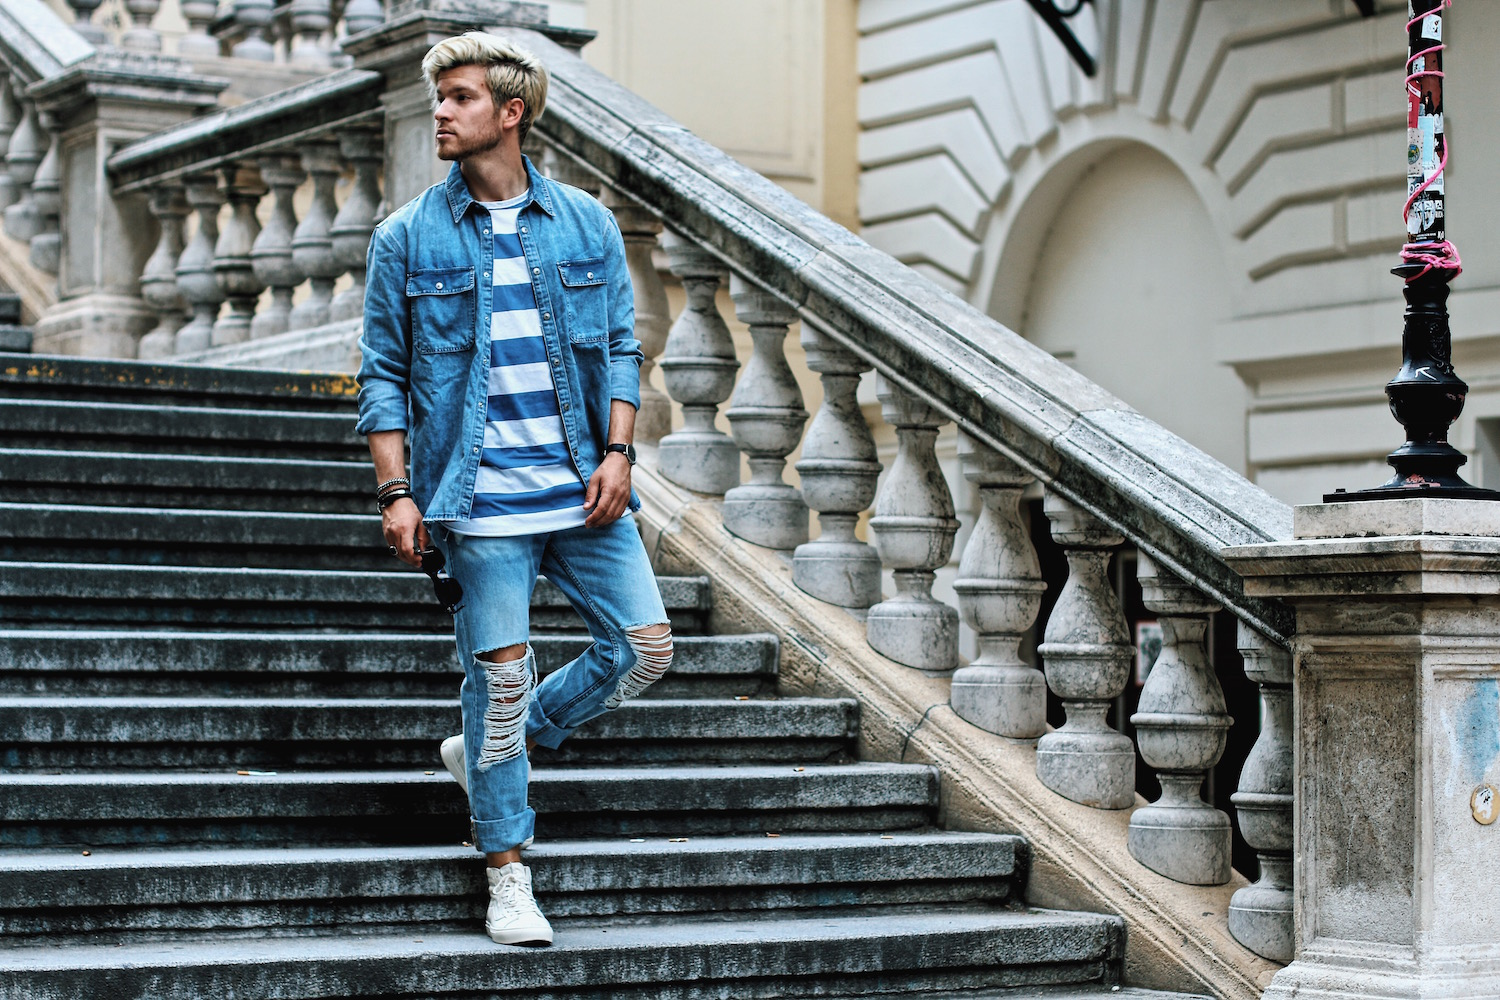 Outfit H&M Denim on Denim Look Ripped Jeans Denim Shirt Striped Tee by Meanwhile in Awesometown Austrian Mensfashion and Lifestyleblogger 6